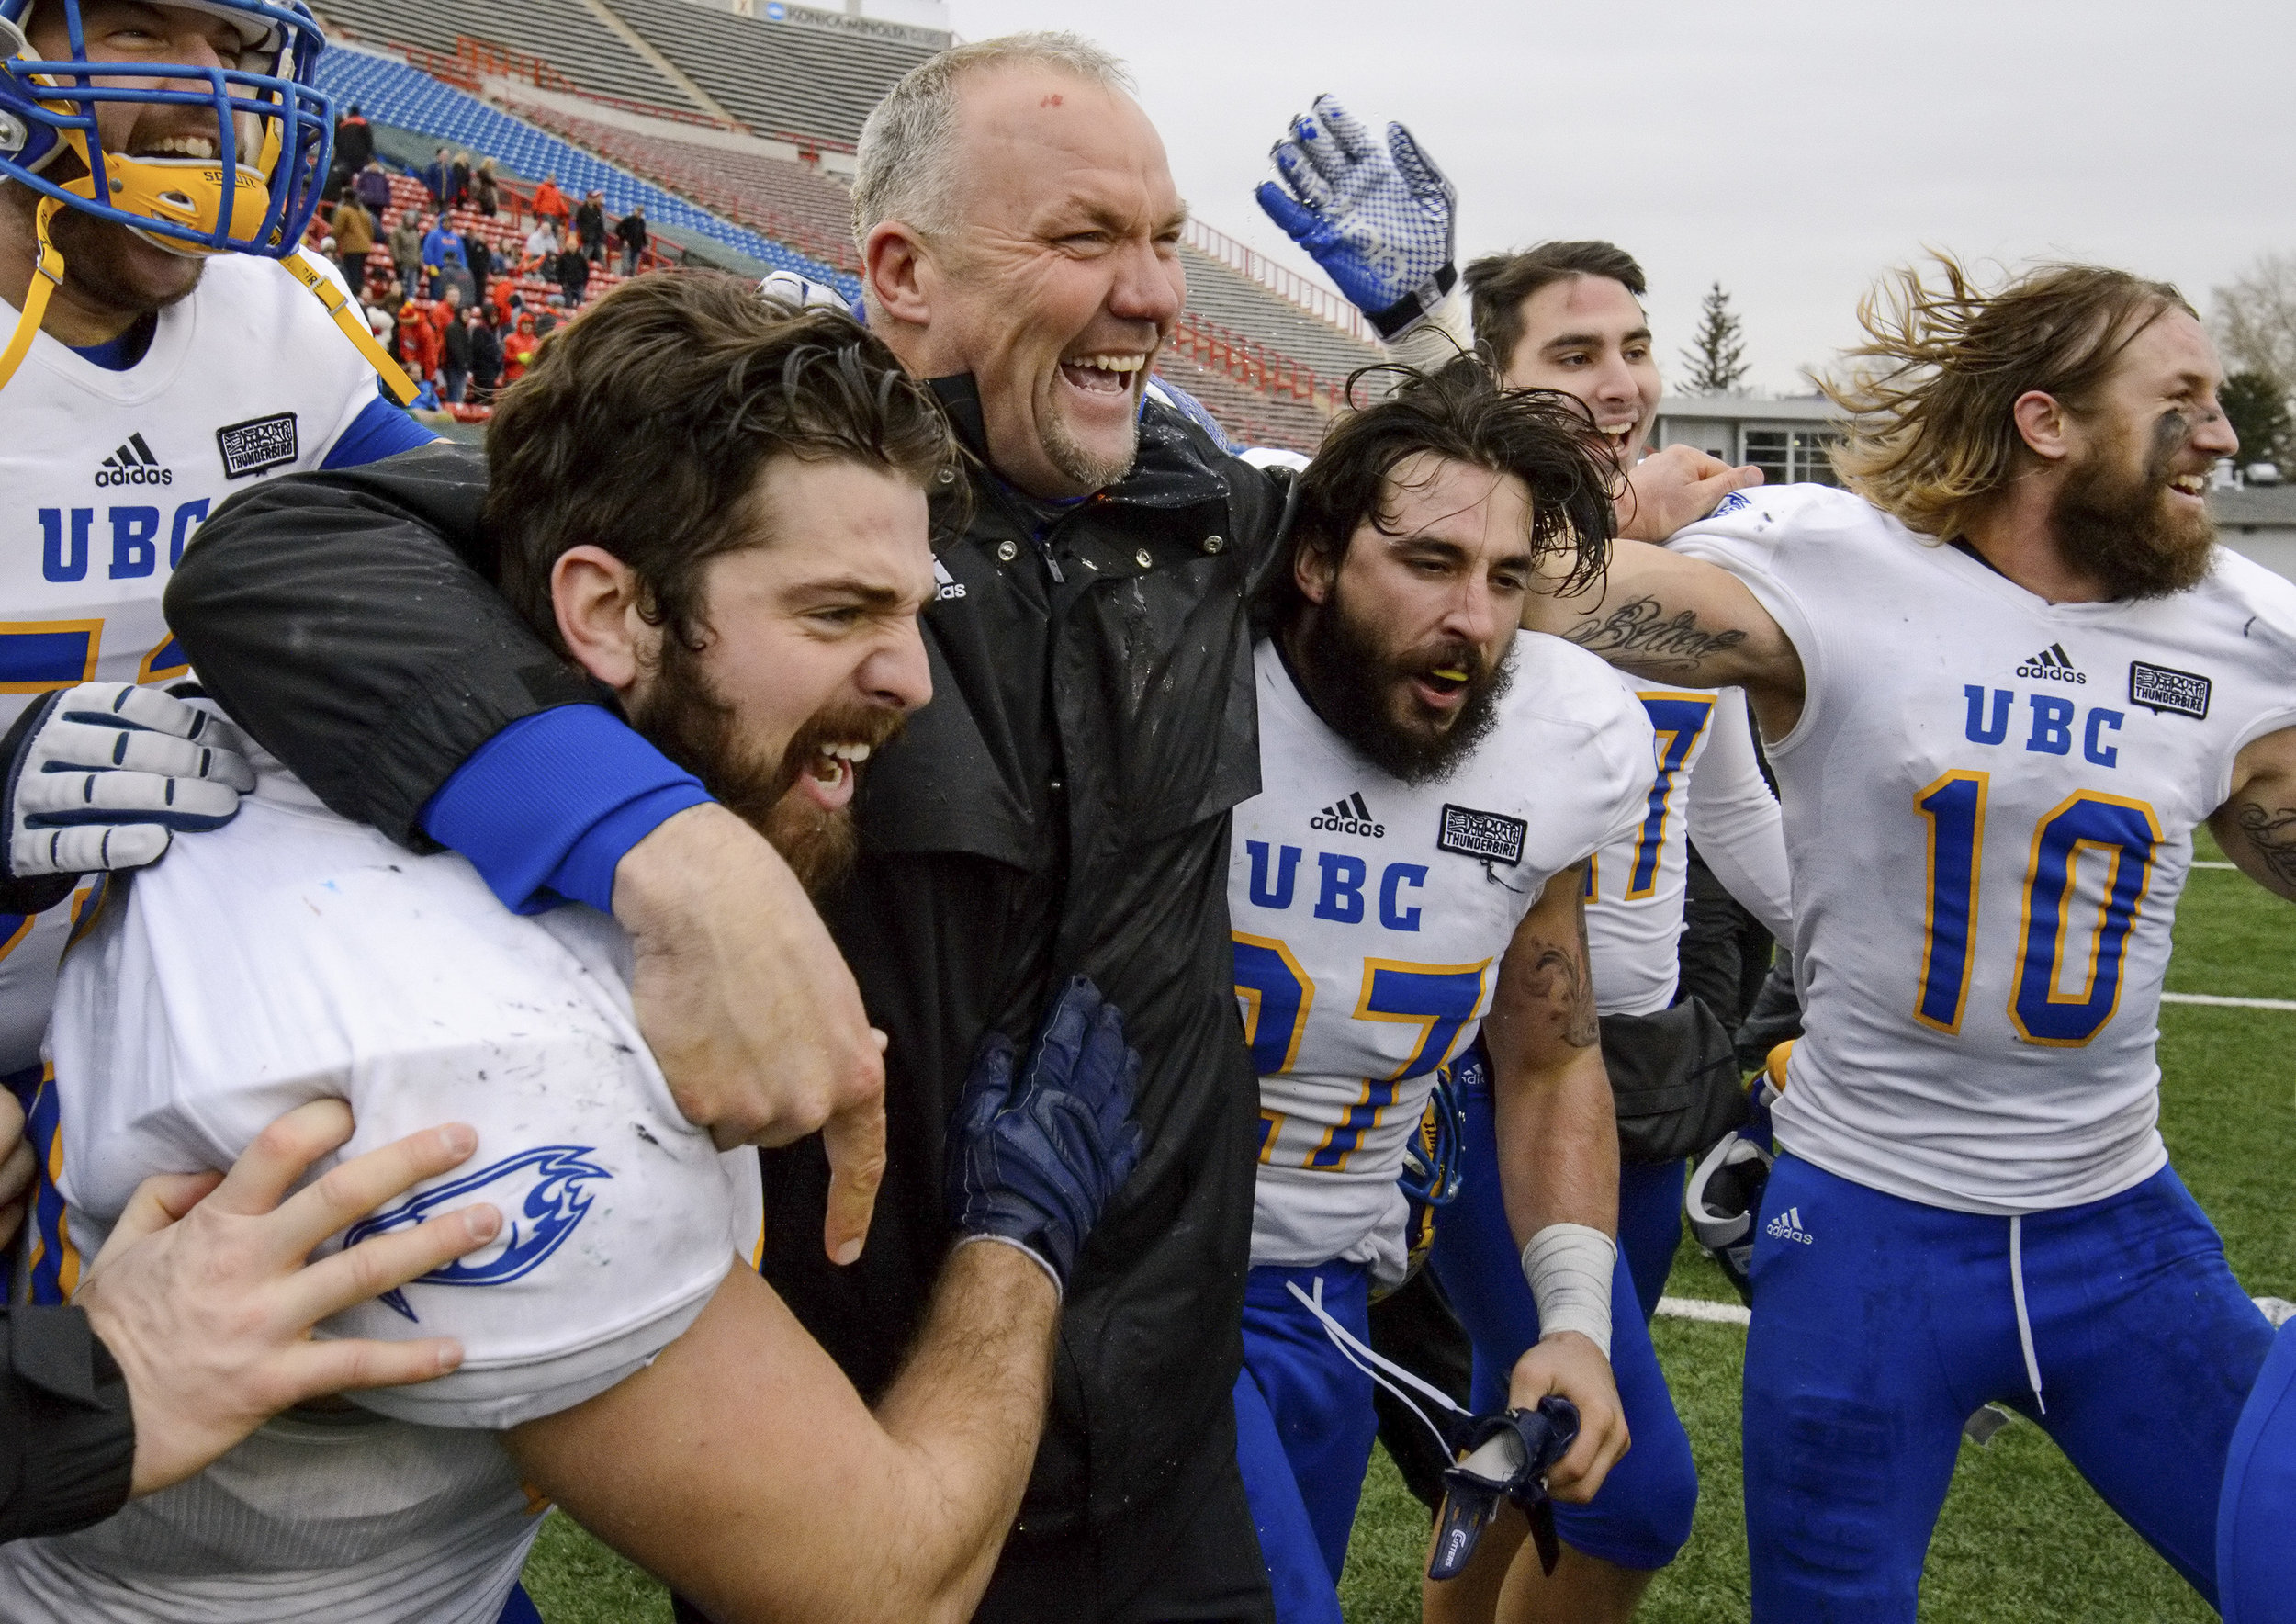 UBC Thunderbirds head coach Blake Nill, centre, celebrates with his team as the 79th Hardy Cup game against the U of C Dinos finishes at McMahon Stadium in Calgary, Alta., on Saturday, Nov. 14, 2015. The UBC Thunderbirds took the Canada West Universities Athletic Association Football Conference championship game 34-26.Before he coached the UBC Thunderbirds, Nill was the head coach of the U of C Dinos, where he led the Dinos to three Vanier Cup games (2009, 2010 & 2013) and six straight Hardy Cup Championships (2008-13). (Photo by Maxwell Mawji/ www.CaptureCandy.com)